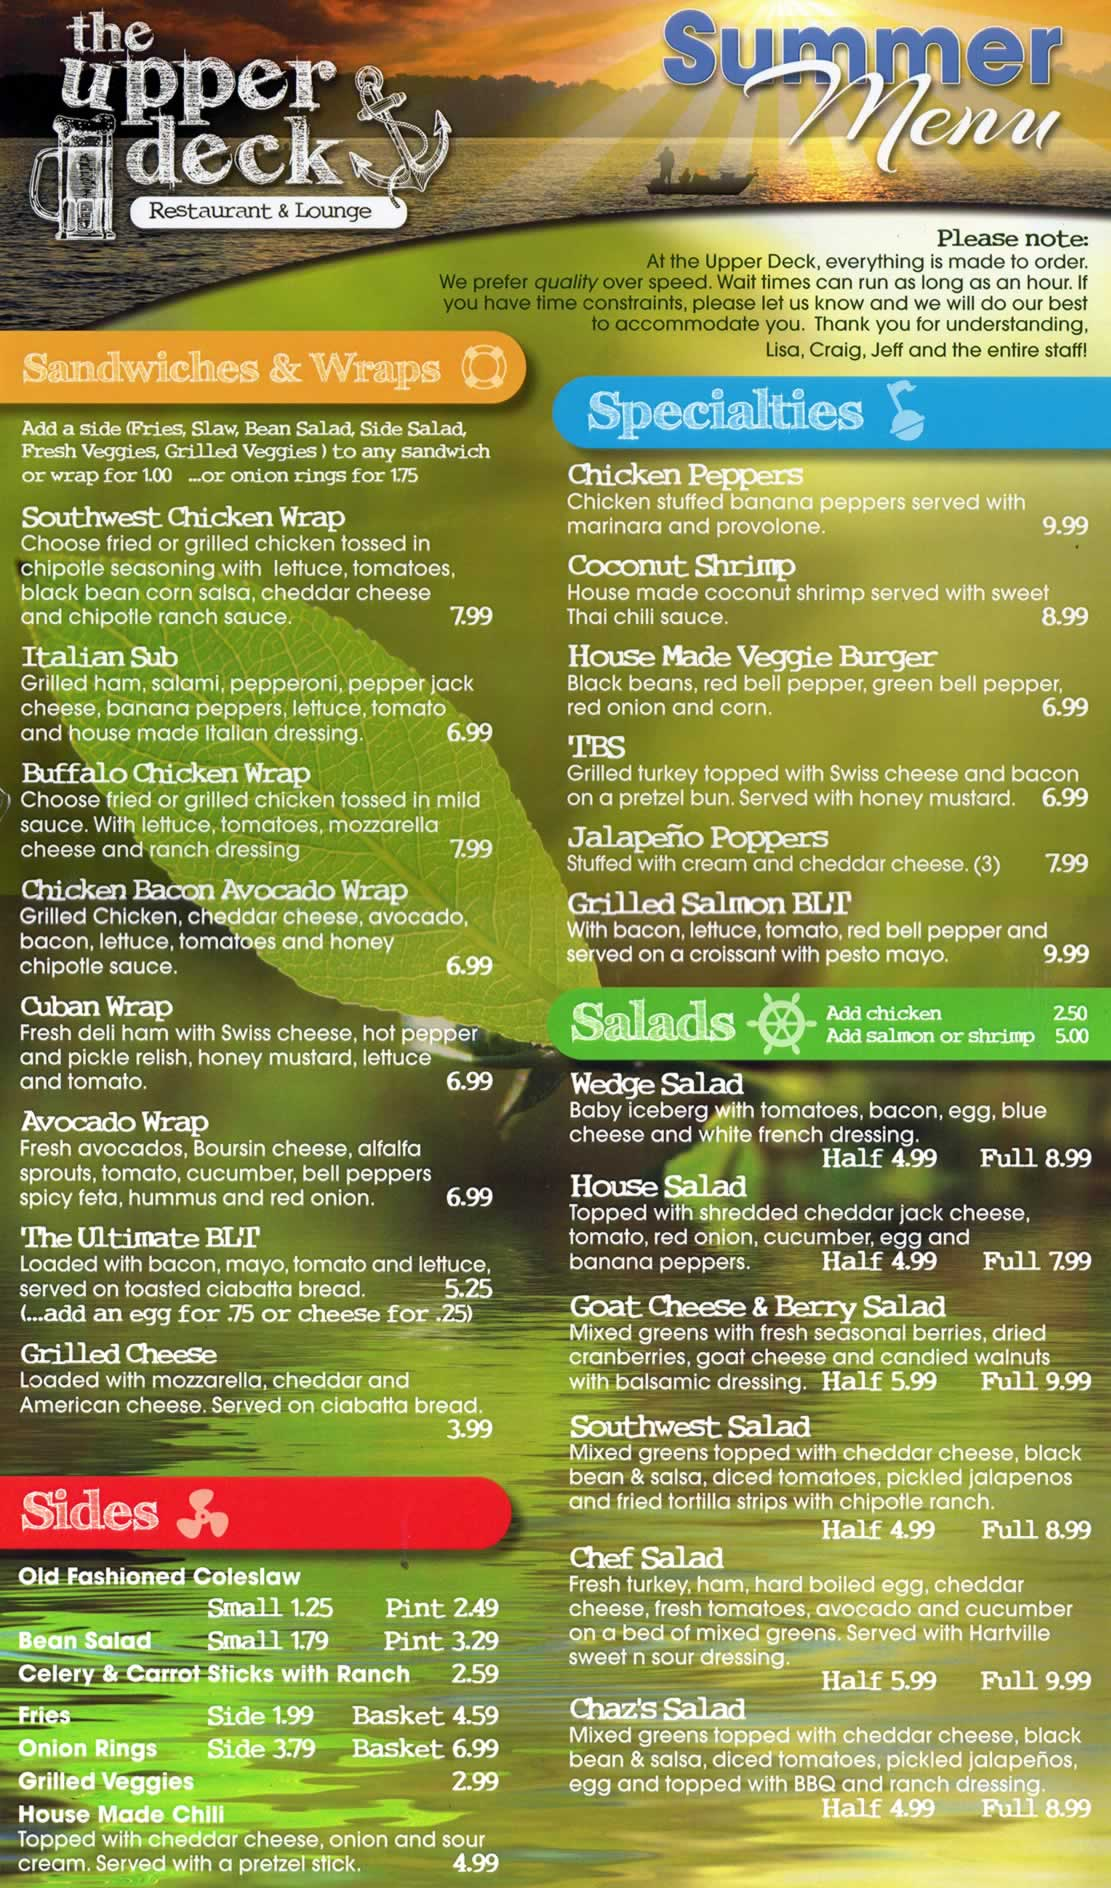 Upper Deck - 2017 Menu